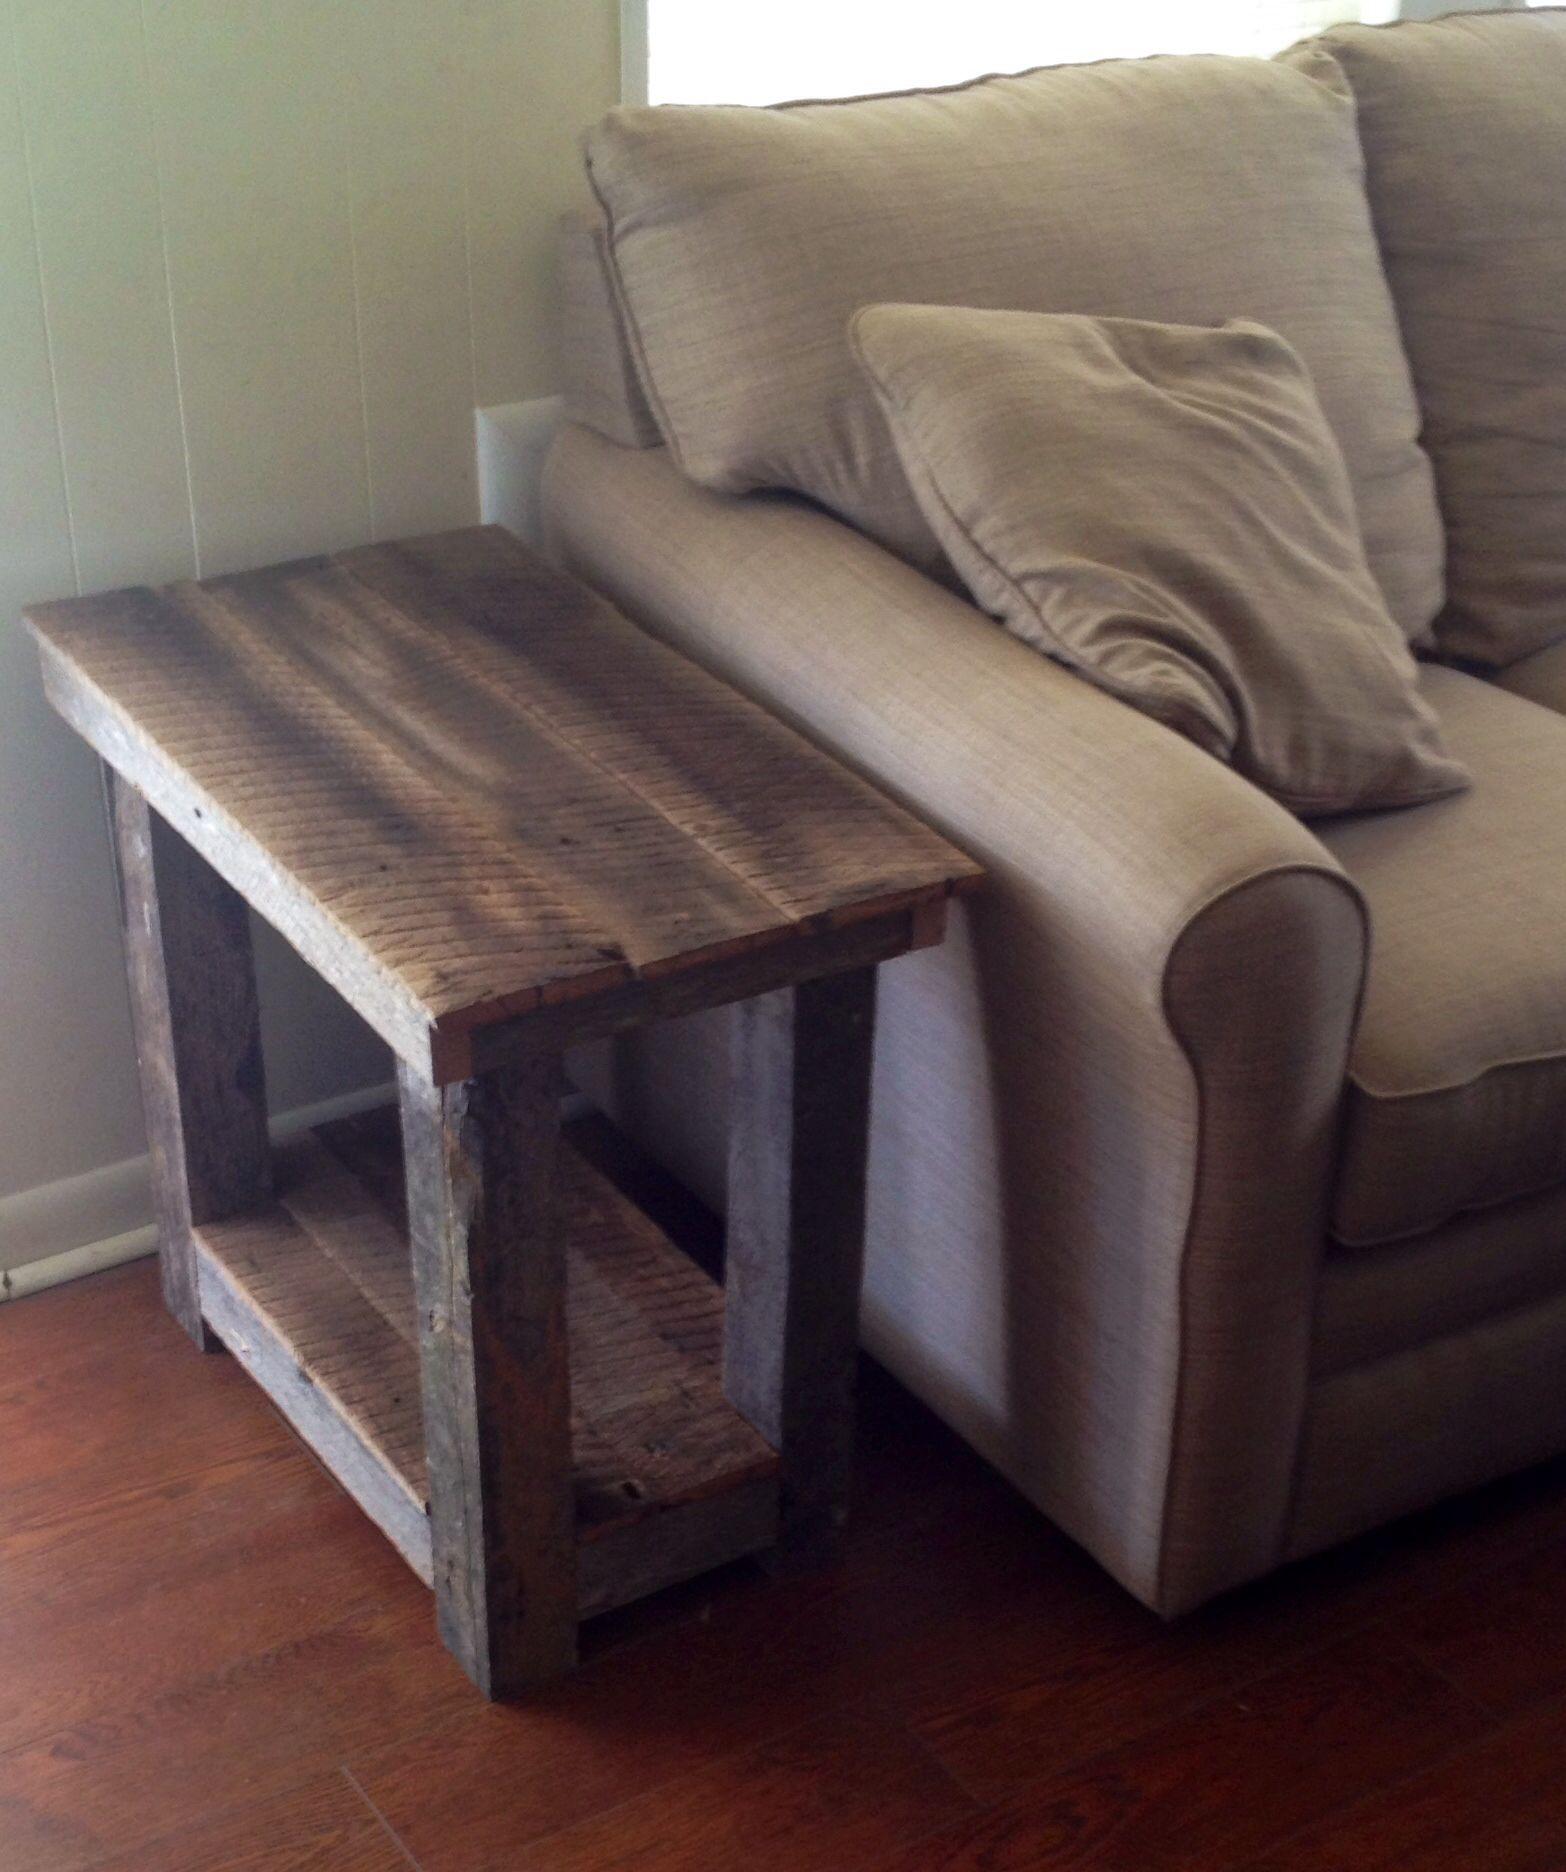 Good Barn Wood End Table I Built From An Old Barn In My Field Hereu0027s What It